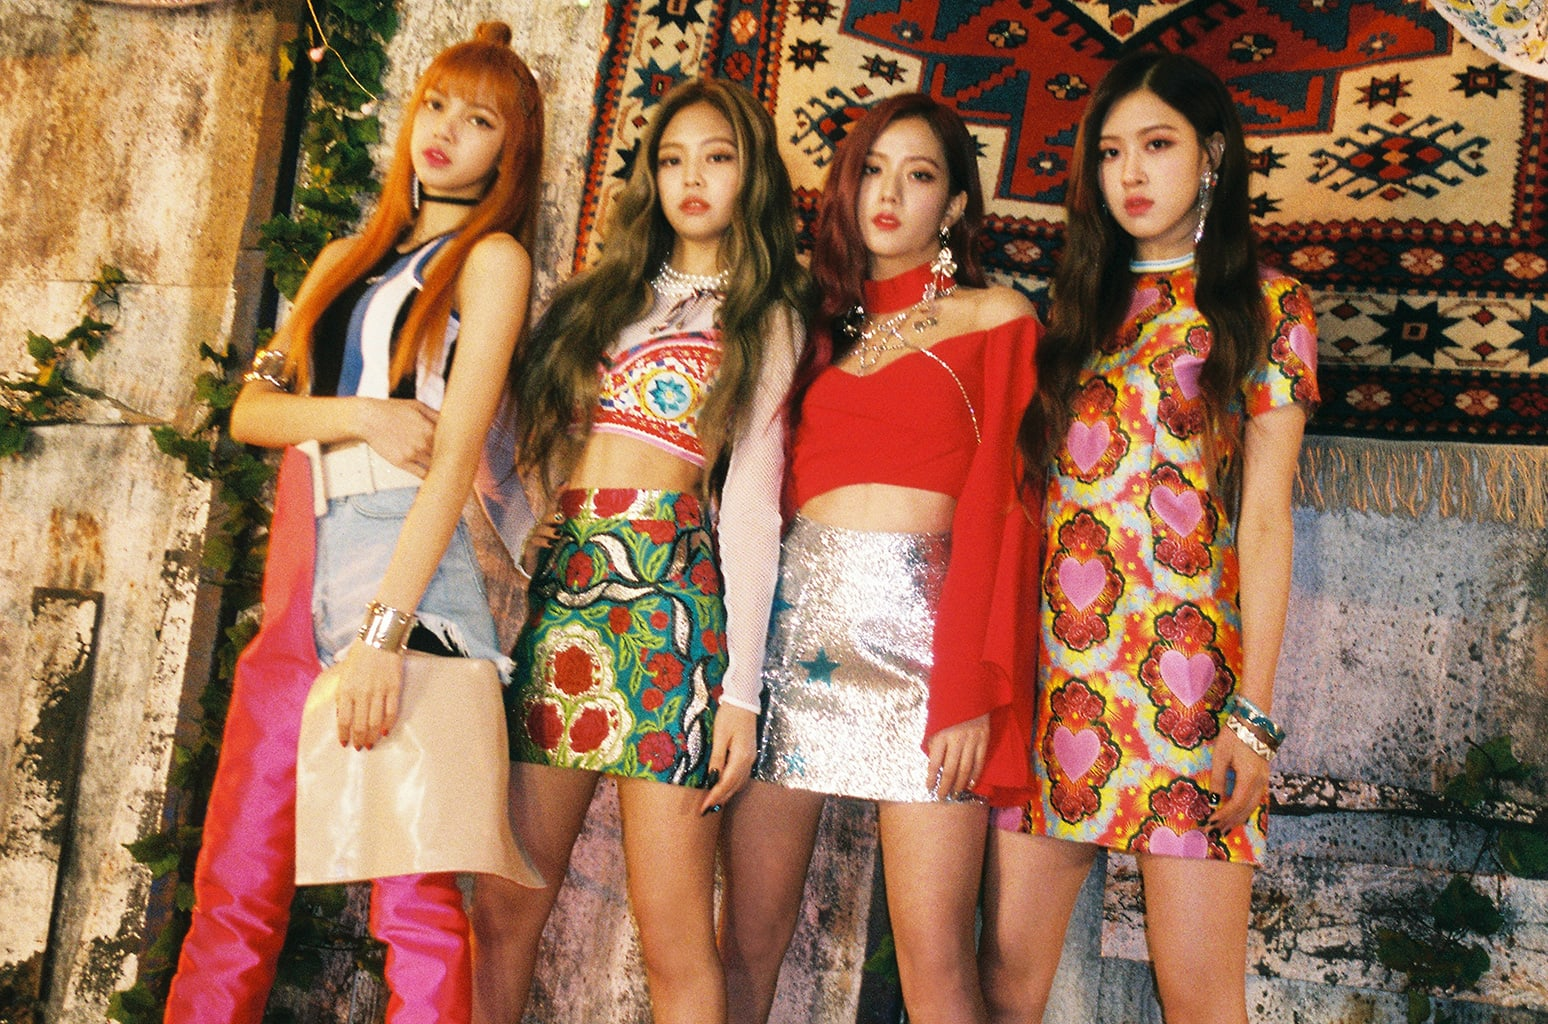 BLACKPINK To Extend Promotion Period With Summer Remix Of As If Its Your Last